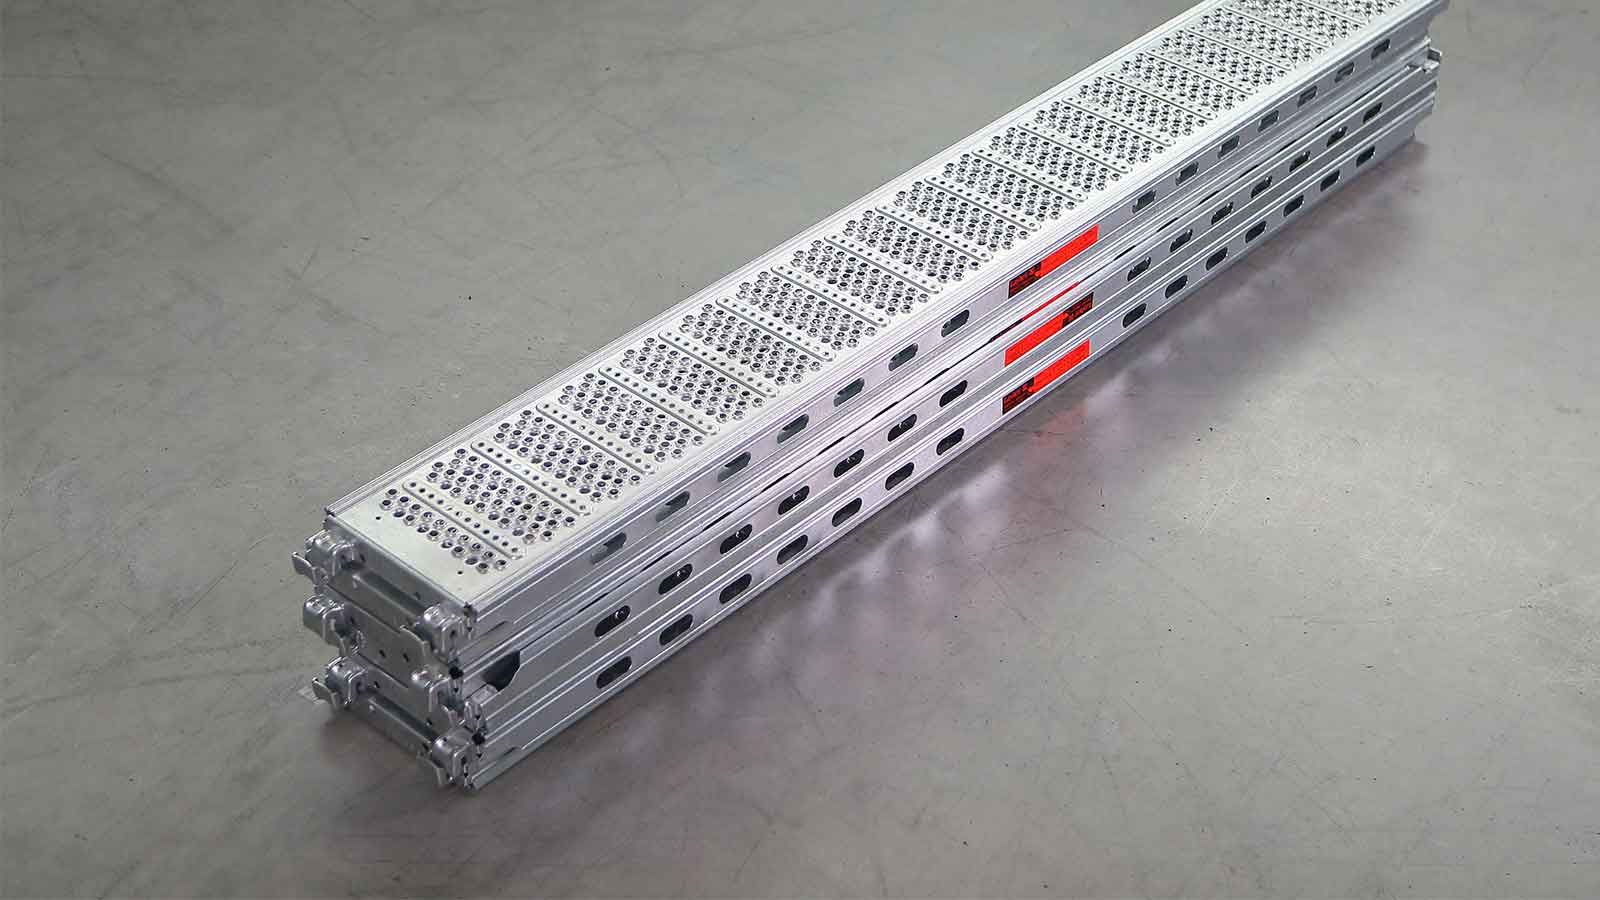 Interlocking and space-saving stacking of U-steel decks LW